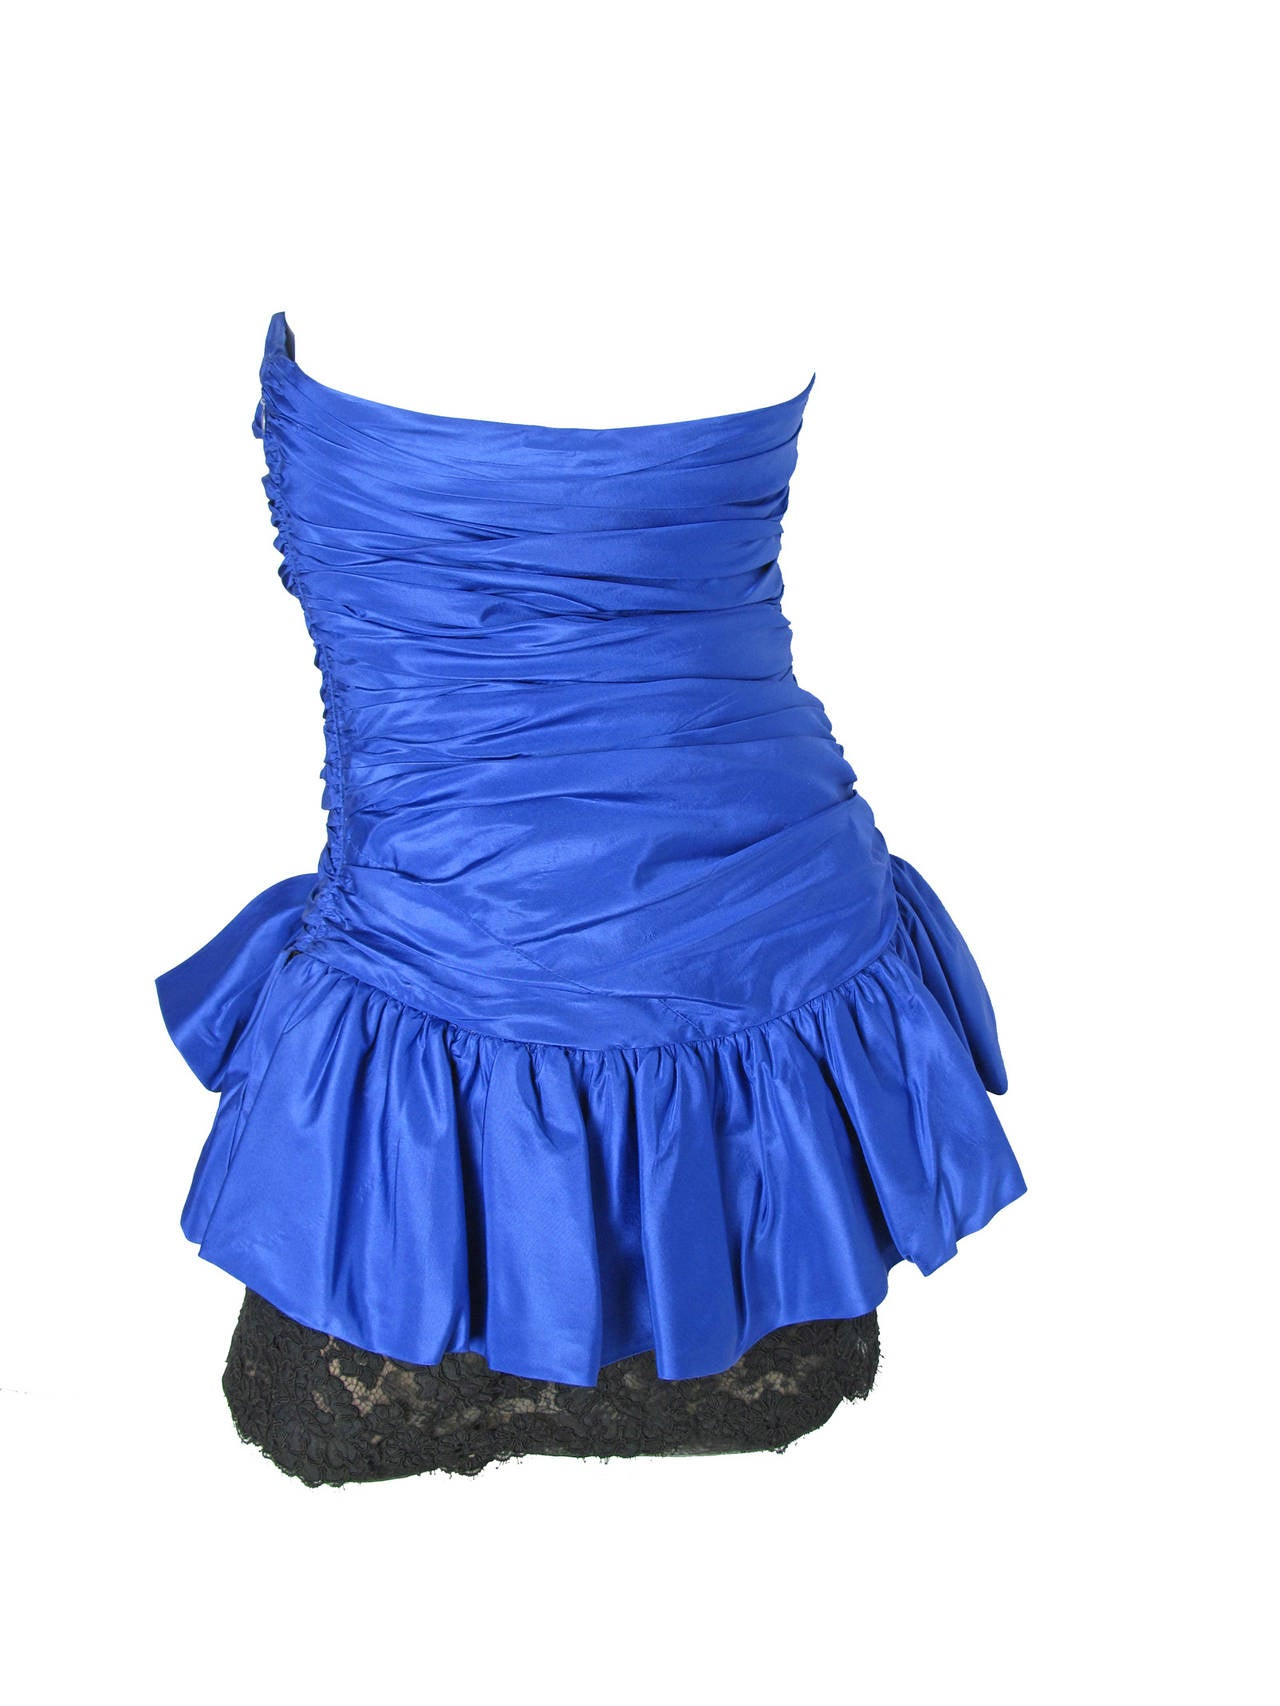 Blue Oscar de la Renta blue taffeta and black lace strapless dress For Sale